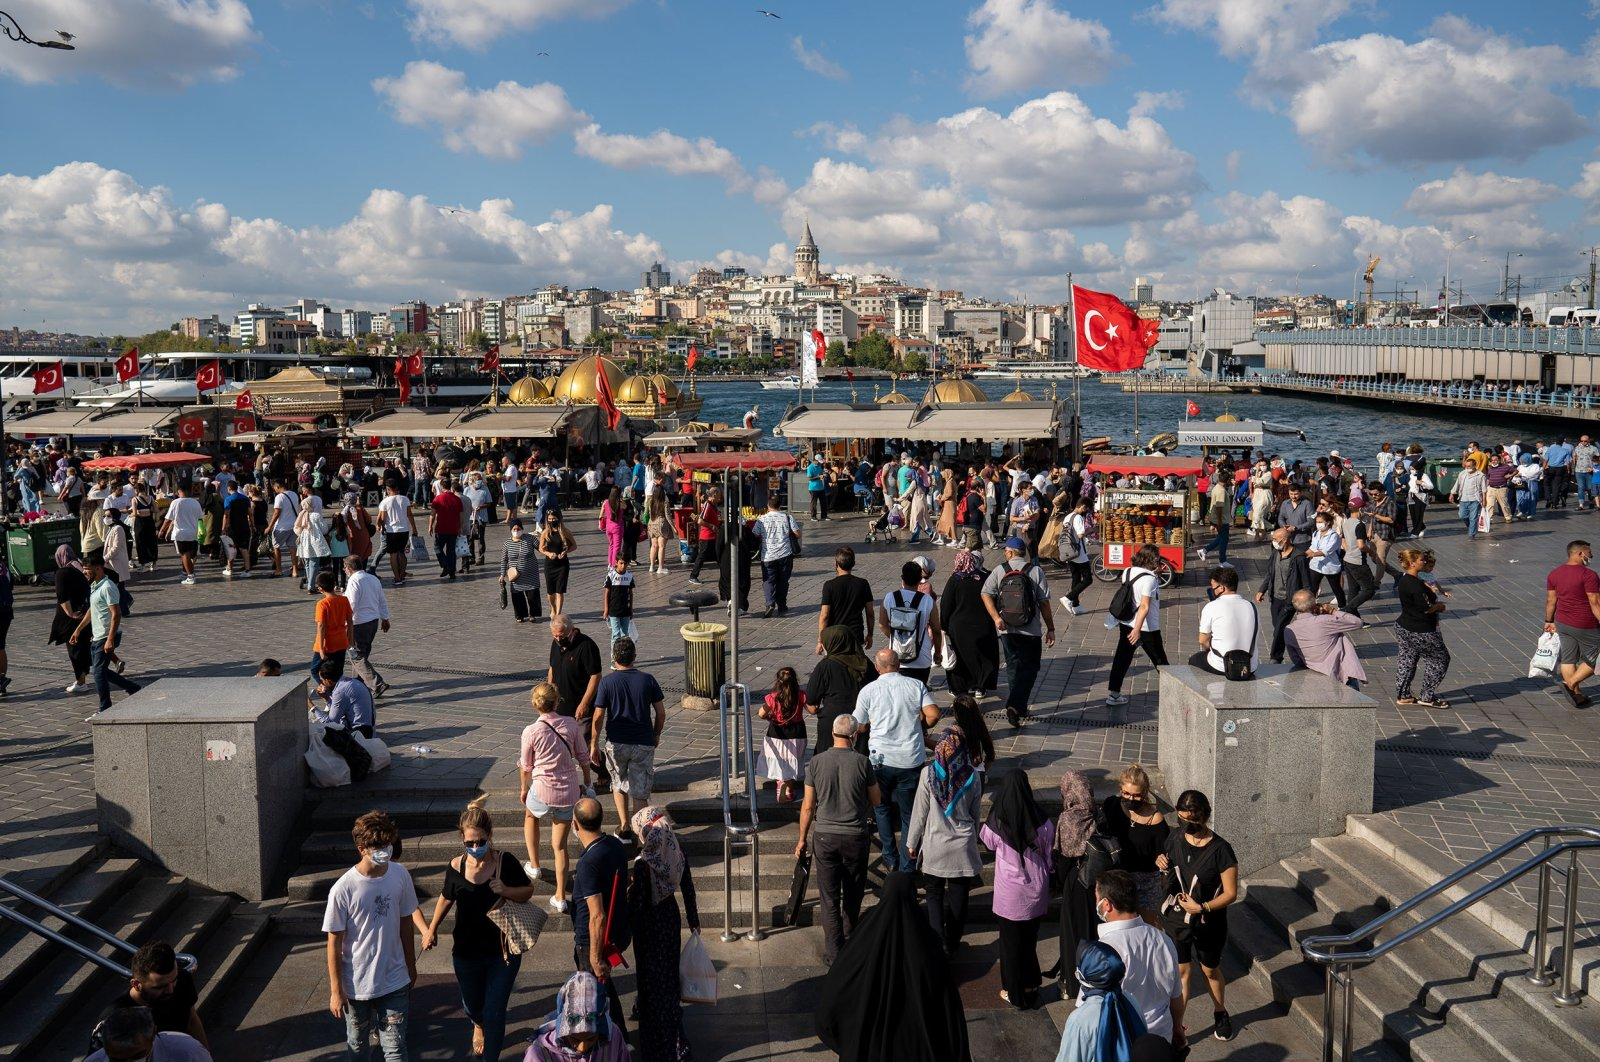 People are seen in the busy shopping district of Eminönü, Istanbul, Turkey, Aug. 21, 2021. (Reuters Photo)